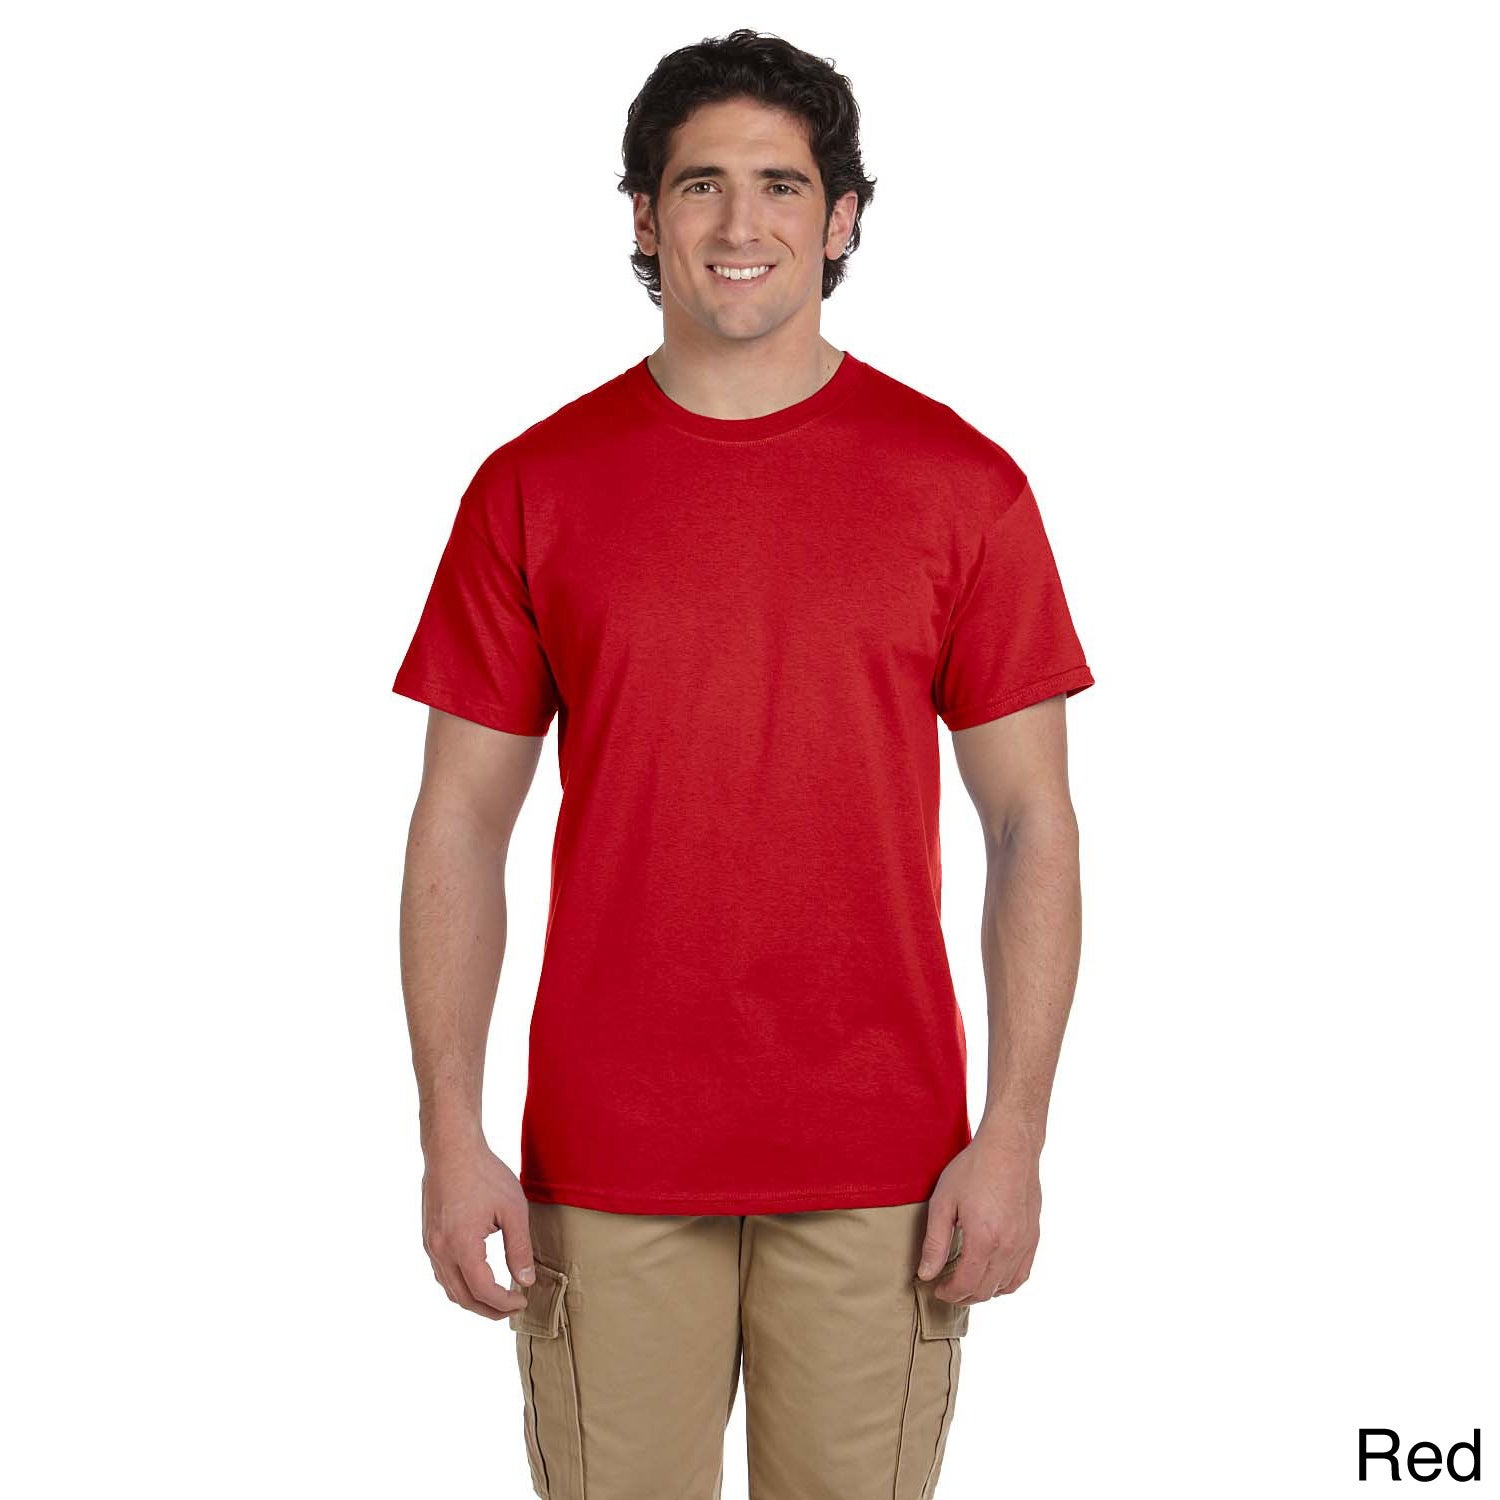 Gildan Gildan Mens Ultra Cotton Tall Short Sleeve T shirt Red Size XL